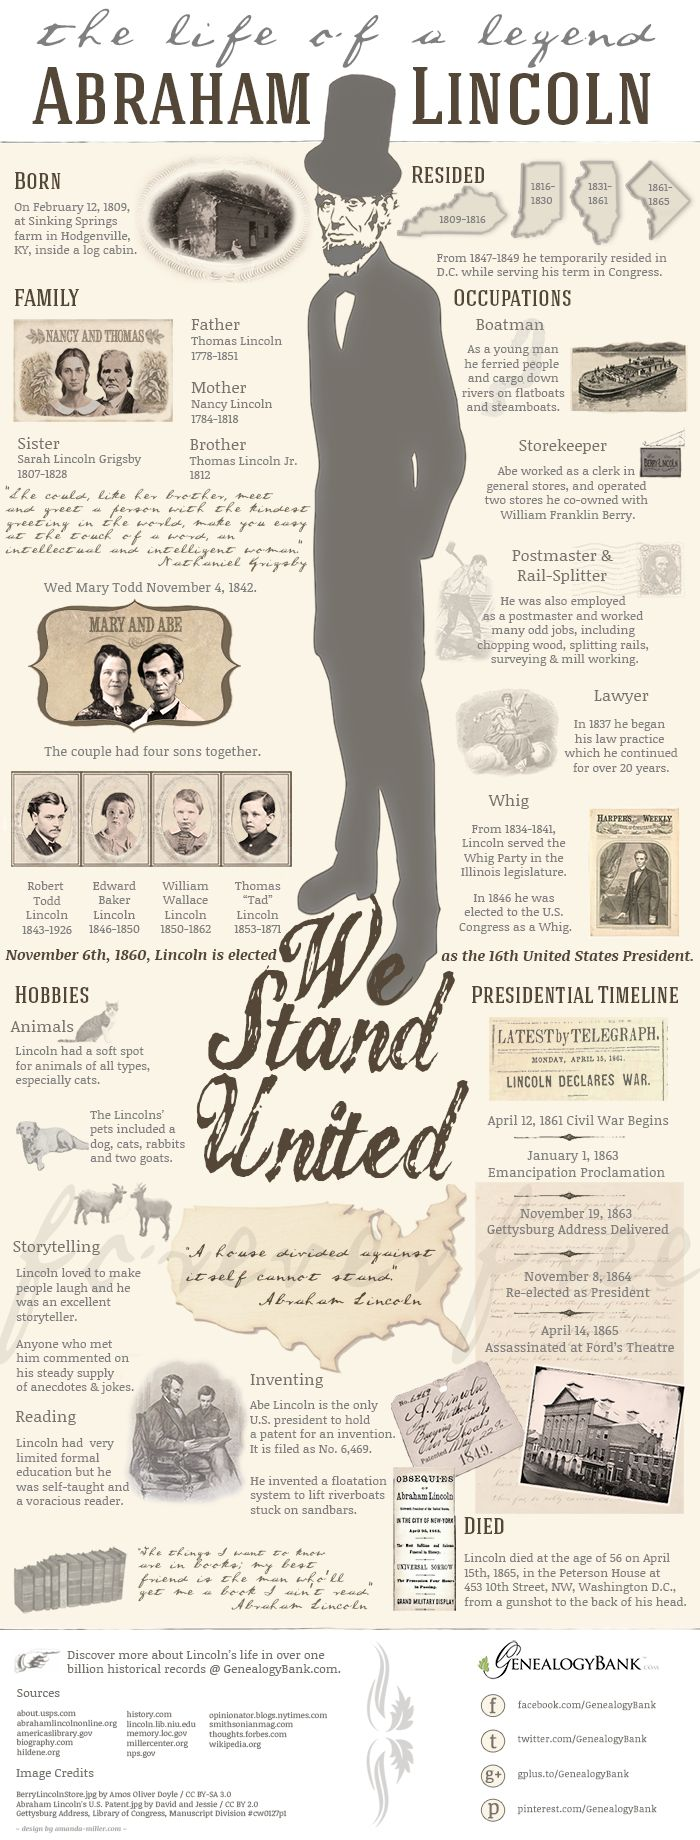 The Life of a Legend: Abraham Lincoln #Infographic. Get details about Abraham Lincoln's genealogy & family tree, discover facts about his life & more in this Infographic from GenealogyBank.com.